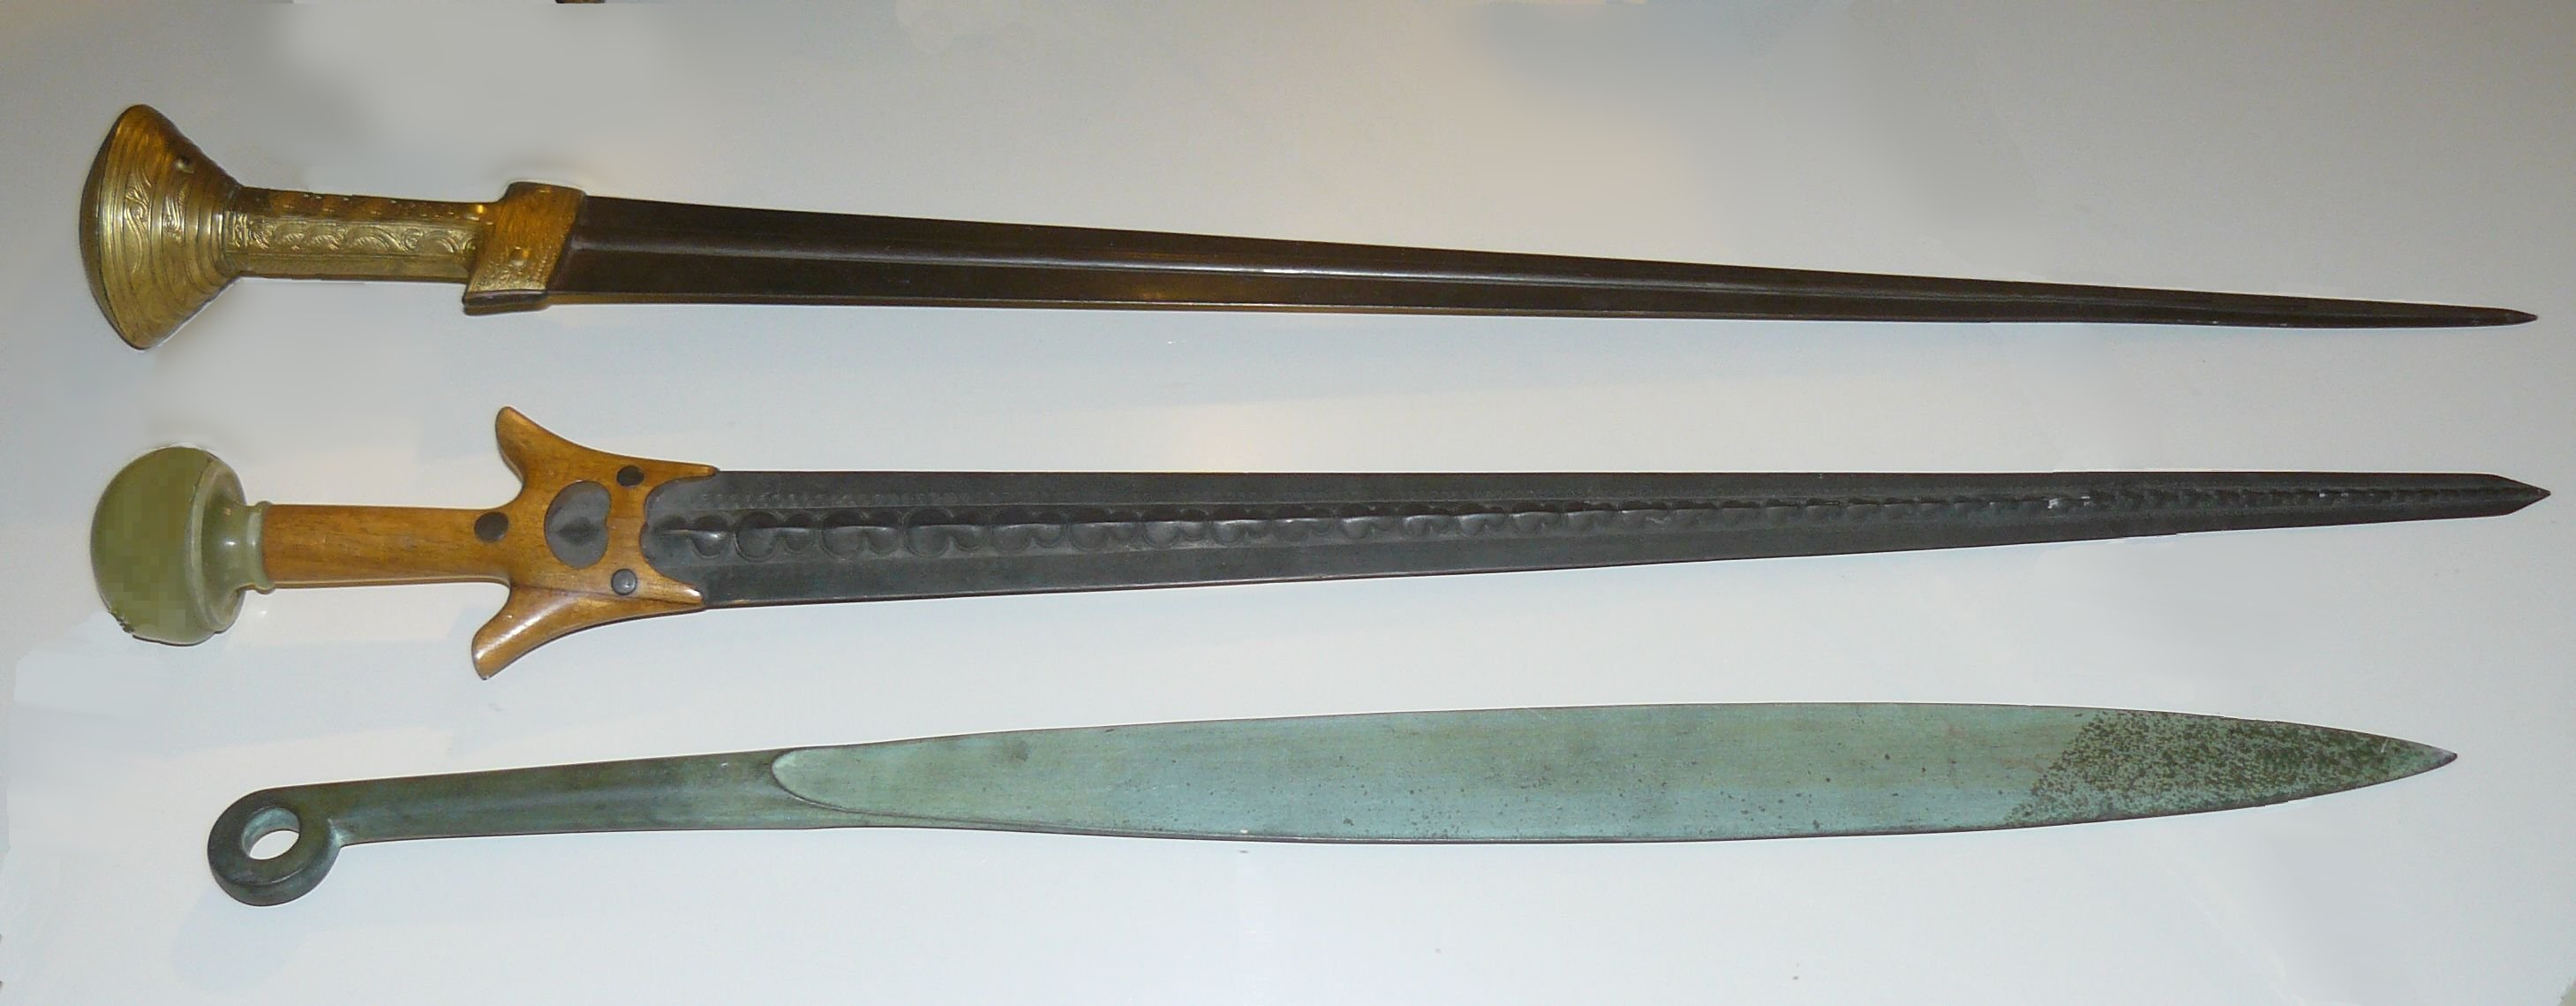 Mycenaean_swords_recostruction.jpg